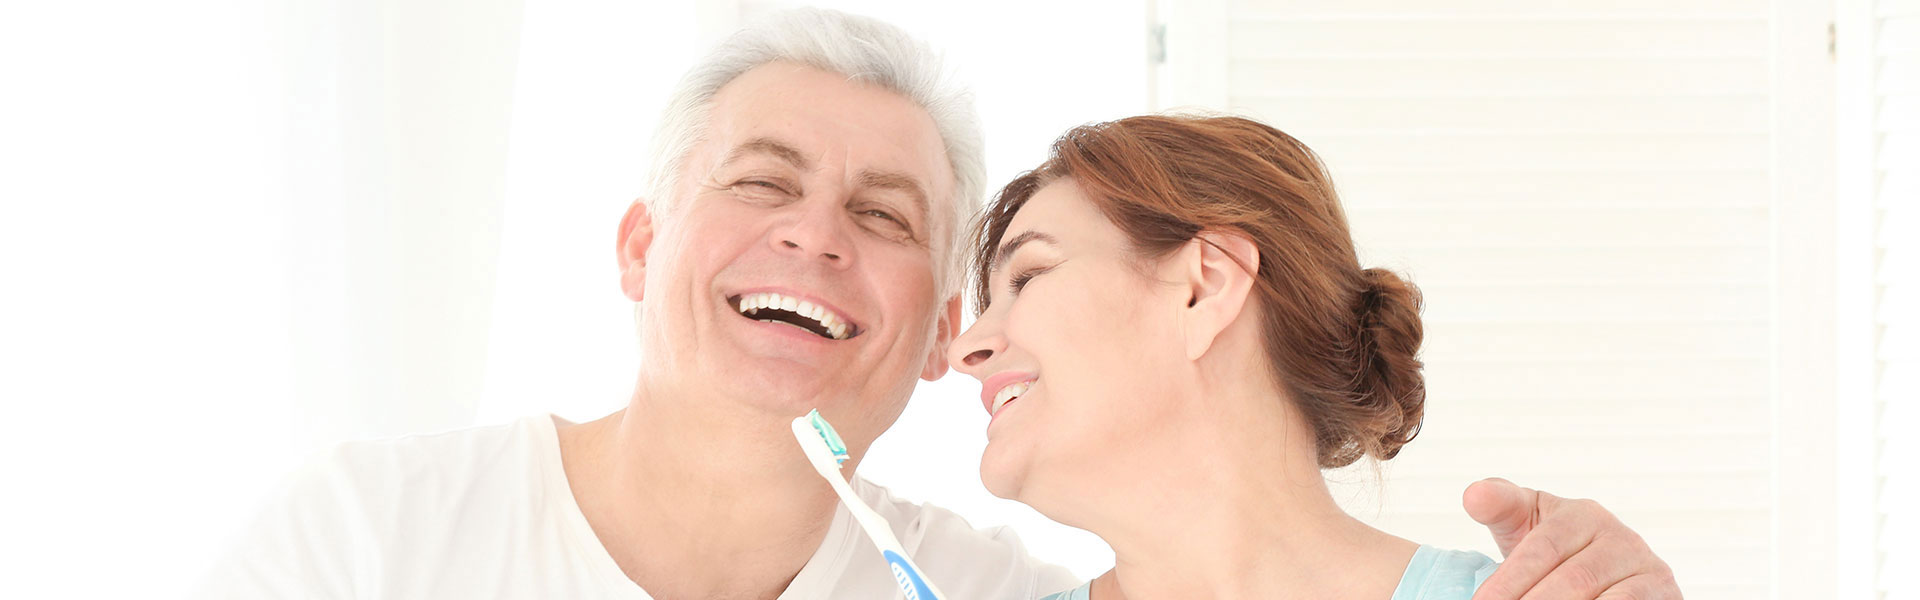 Couple smiling with toothbrush